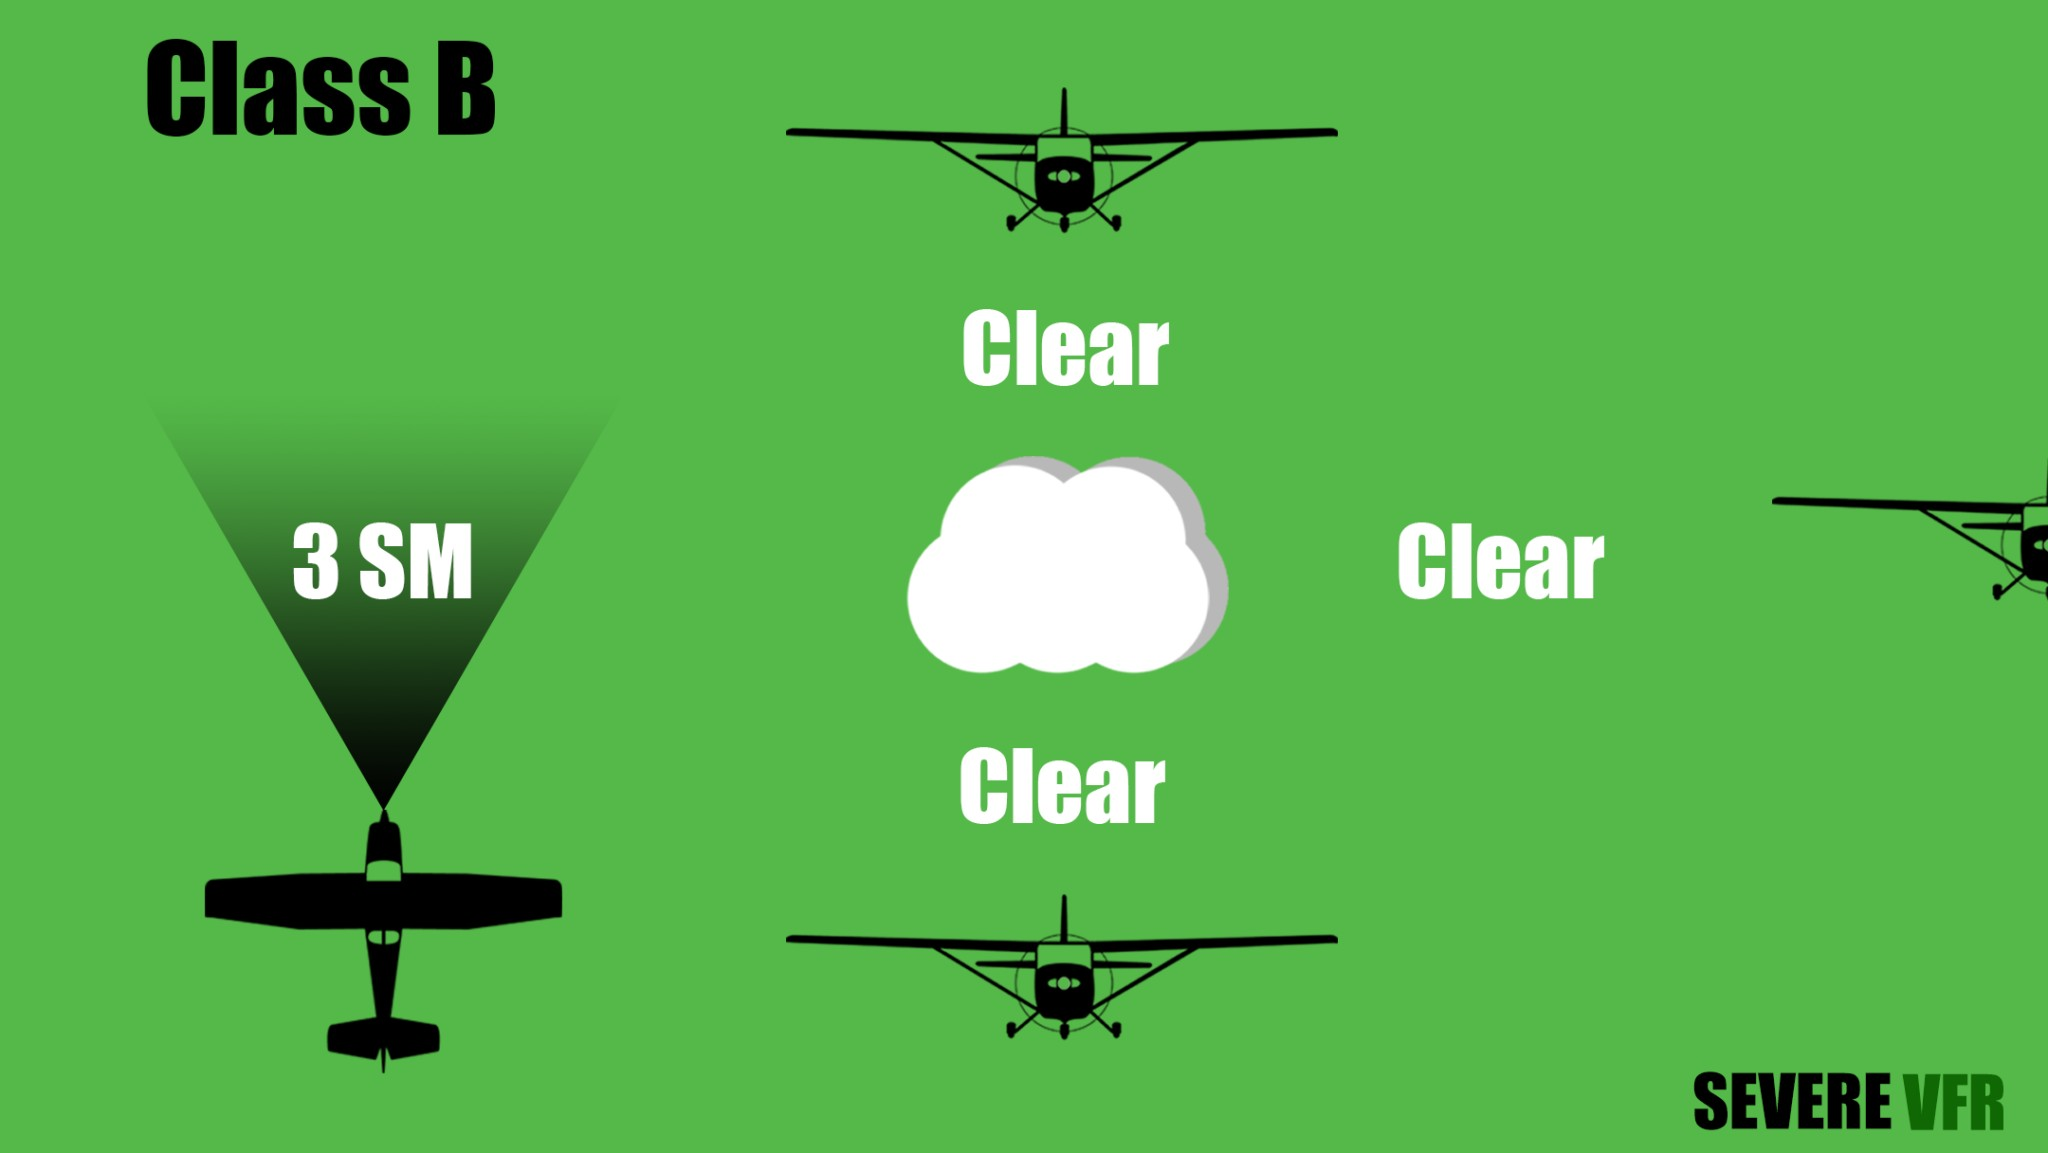 Class B VFR Weather Minimums Explanation Graphic